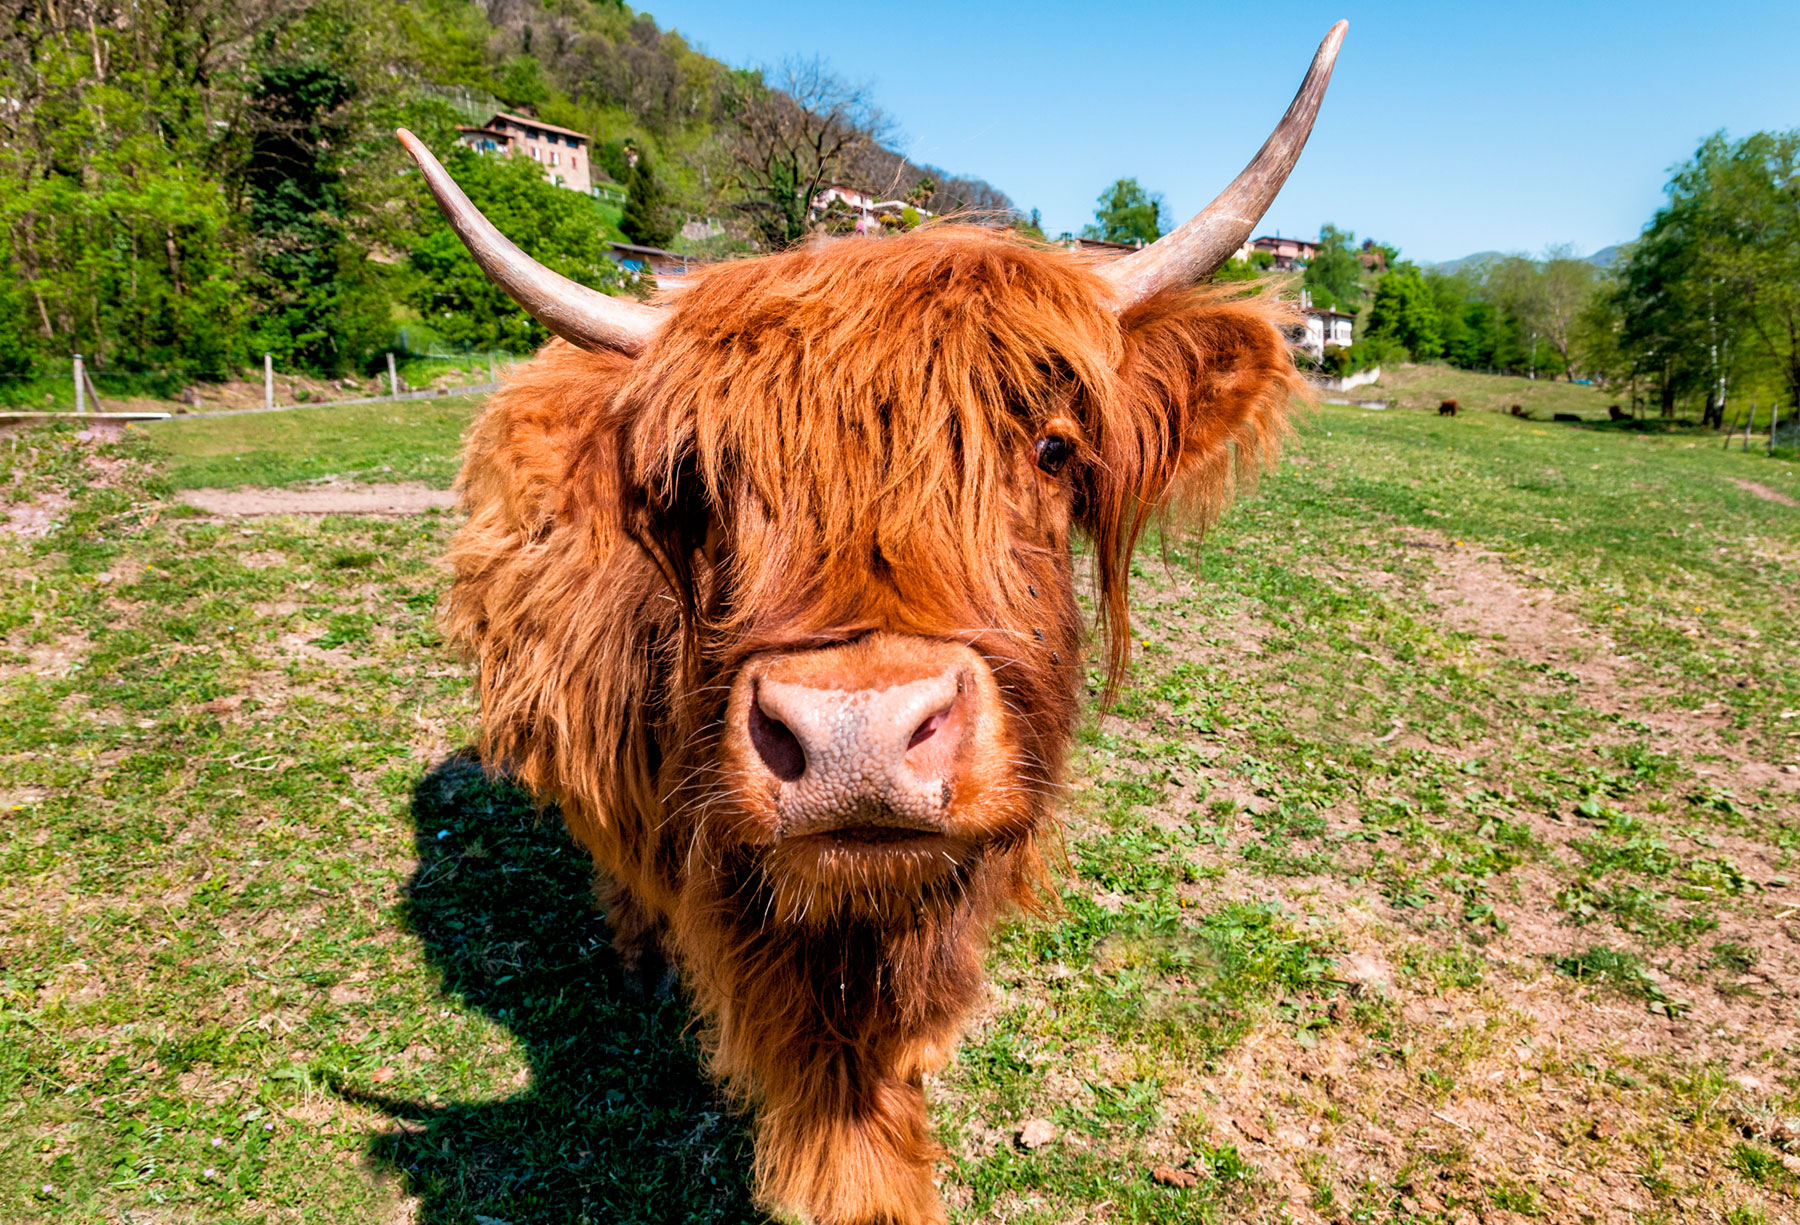 Highland Cow. Dr. Lucas is a large animal veterinarian